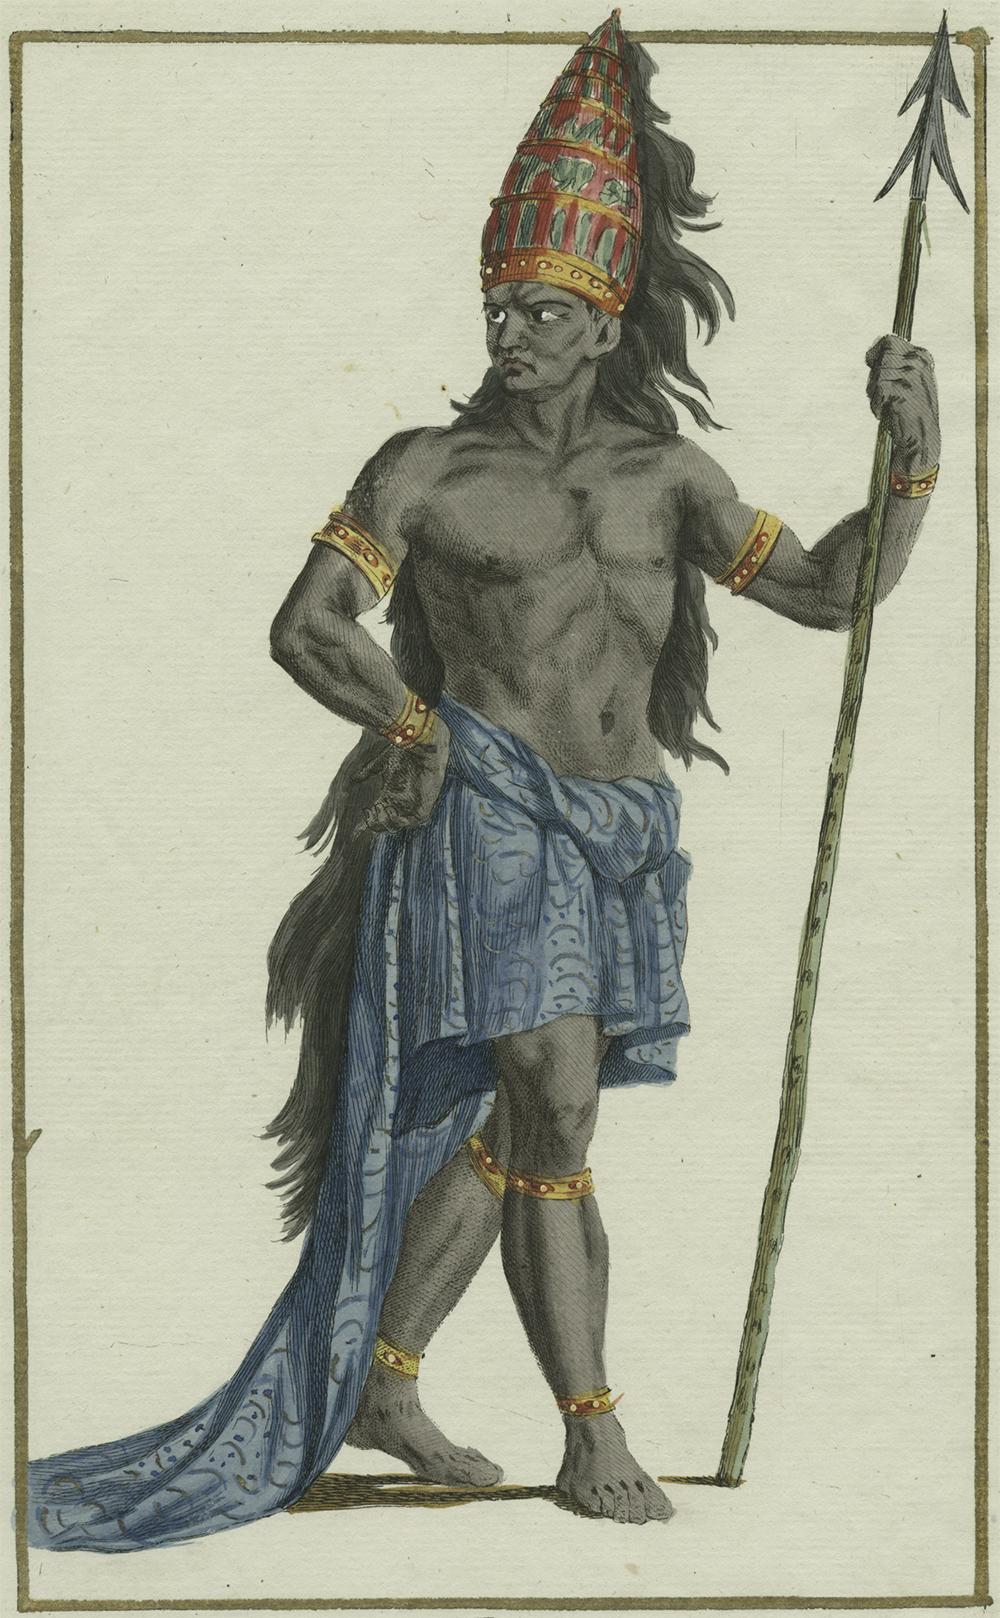 João I of Kongo, or Nzinga a Nkuwu, by Pierre Duflos, nineteenth century. The New York Public Library, Schomburg Center for Research in Black Culture, Photographs and Prints Division.